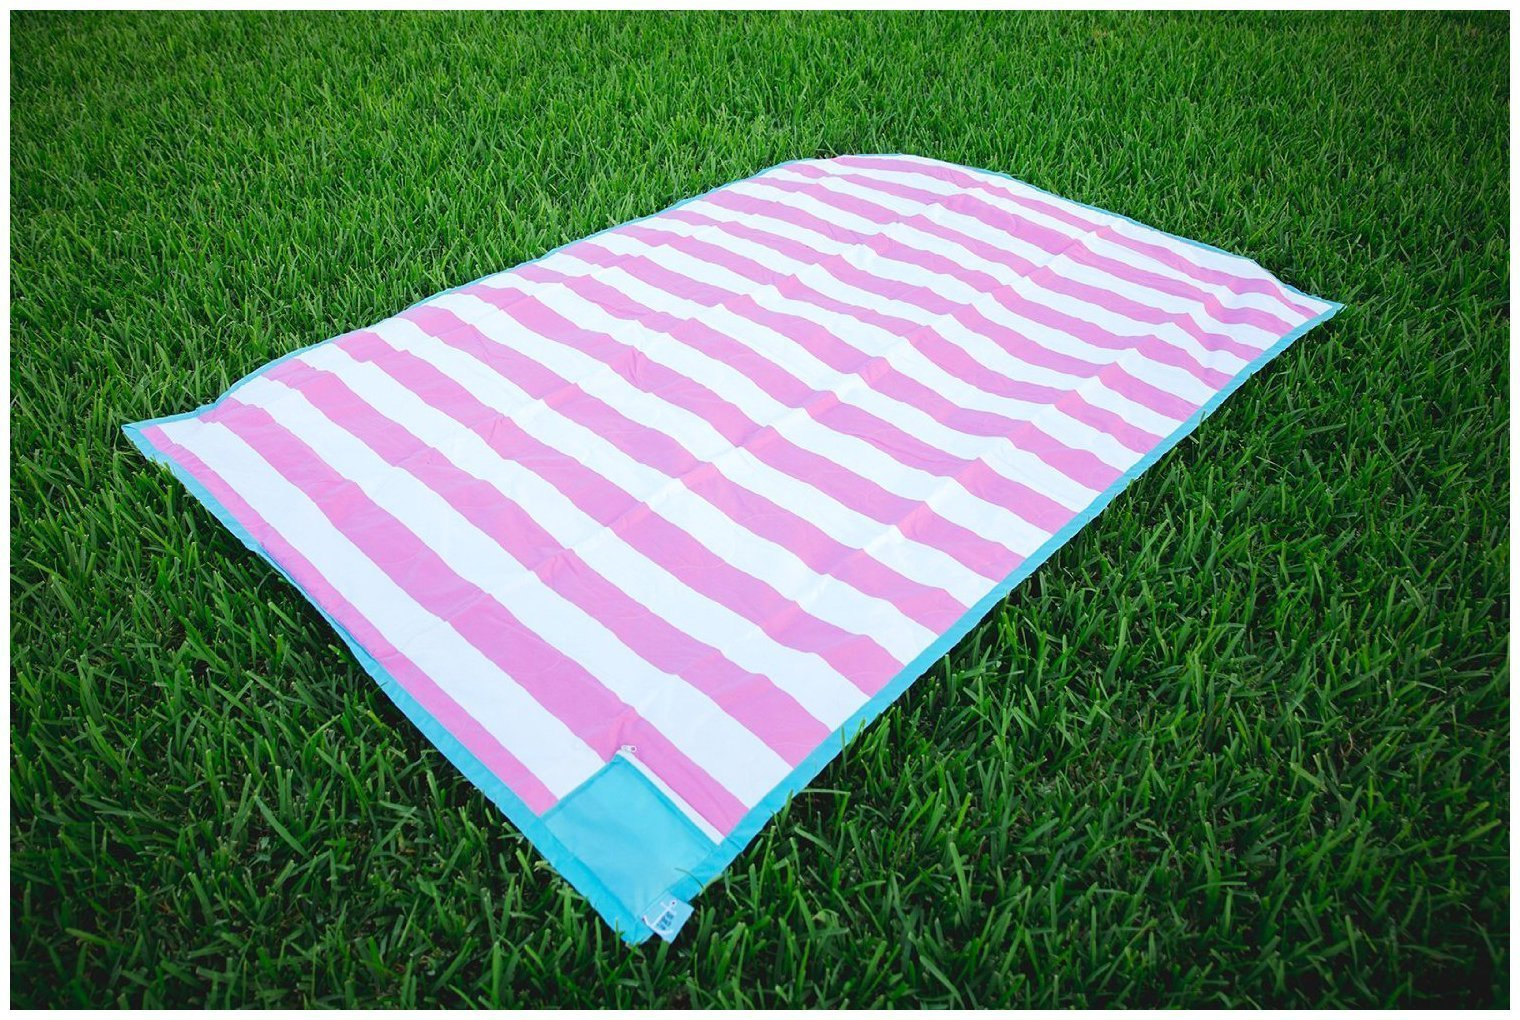 Palm Beach Crew Brilliant Blanket and Wet Bag Collection, Cabana Pink by Palm Beach Crew (Image #2)